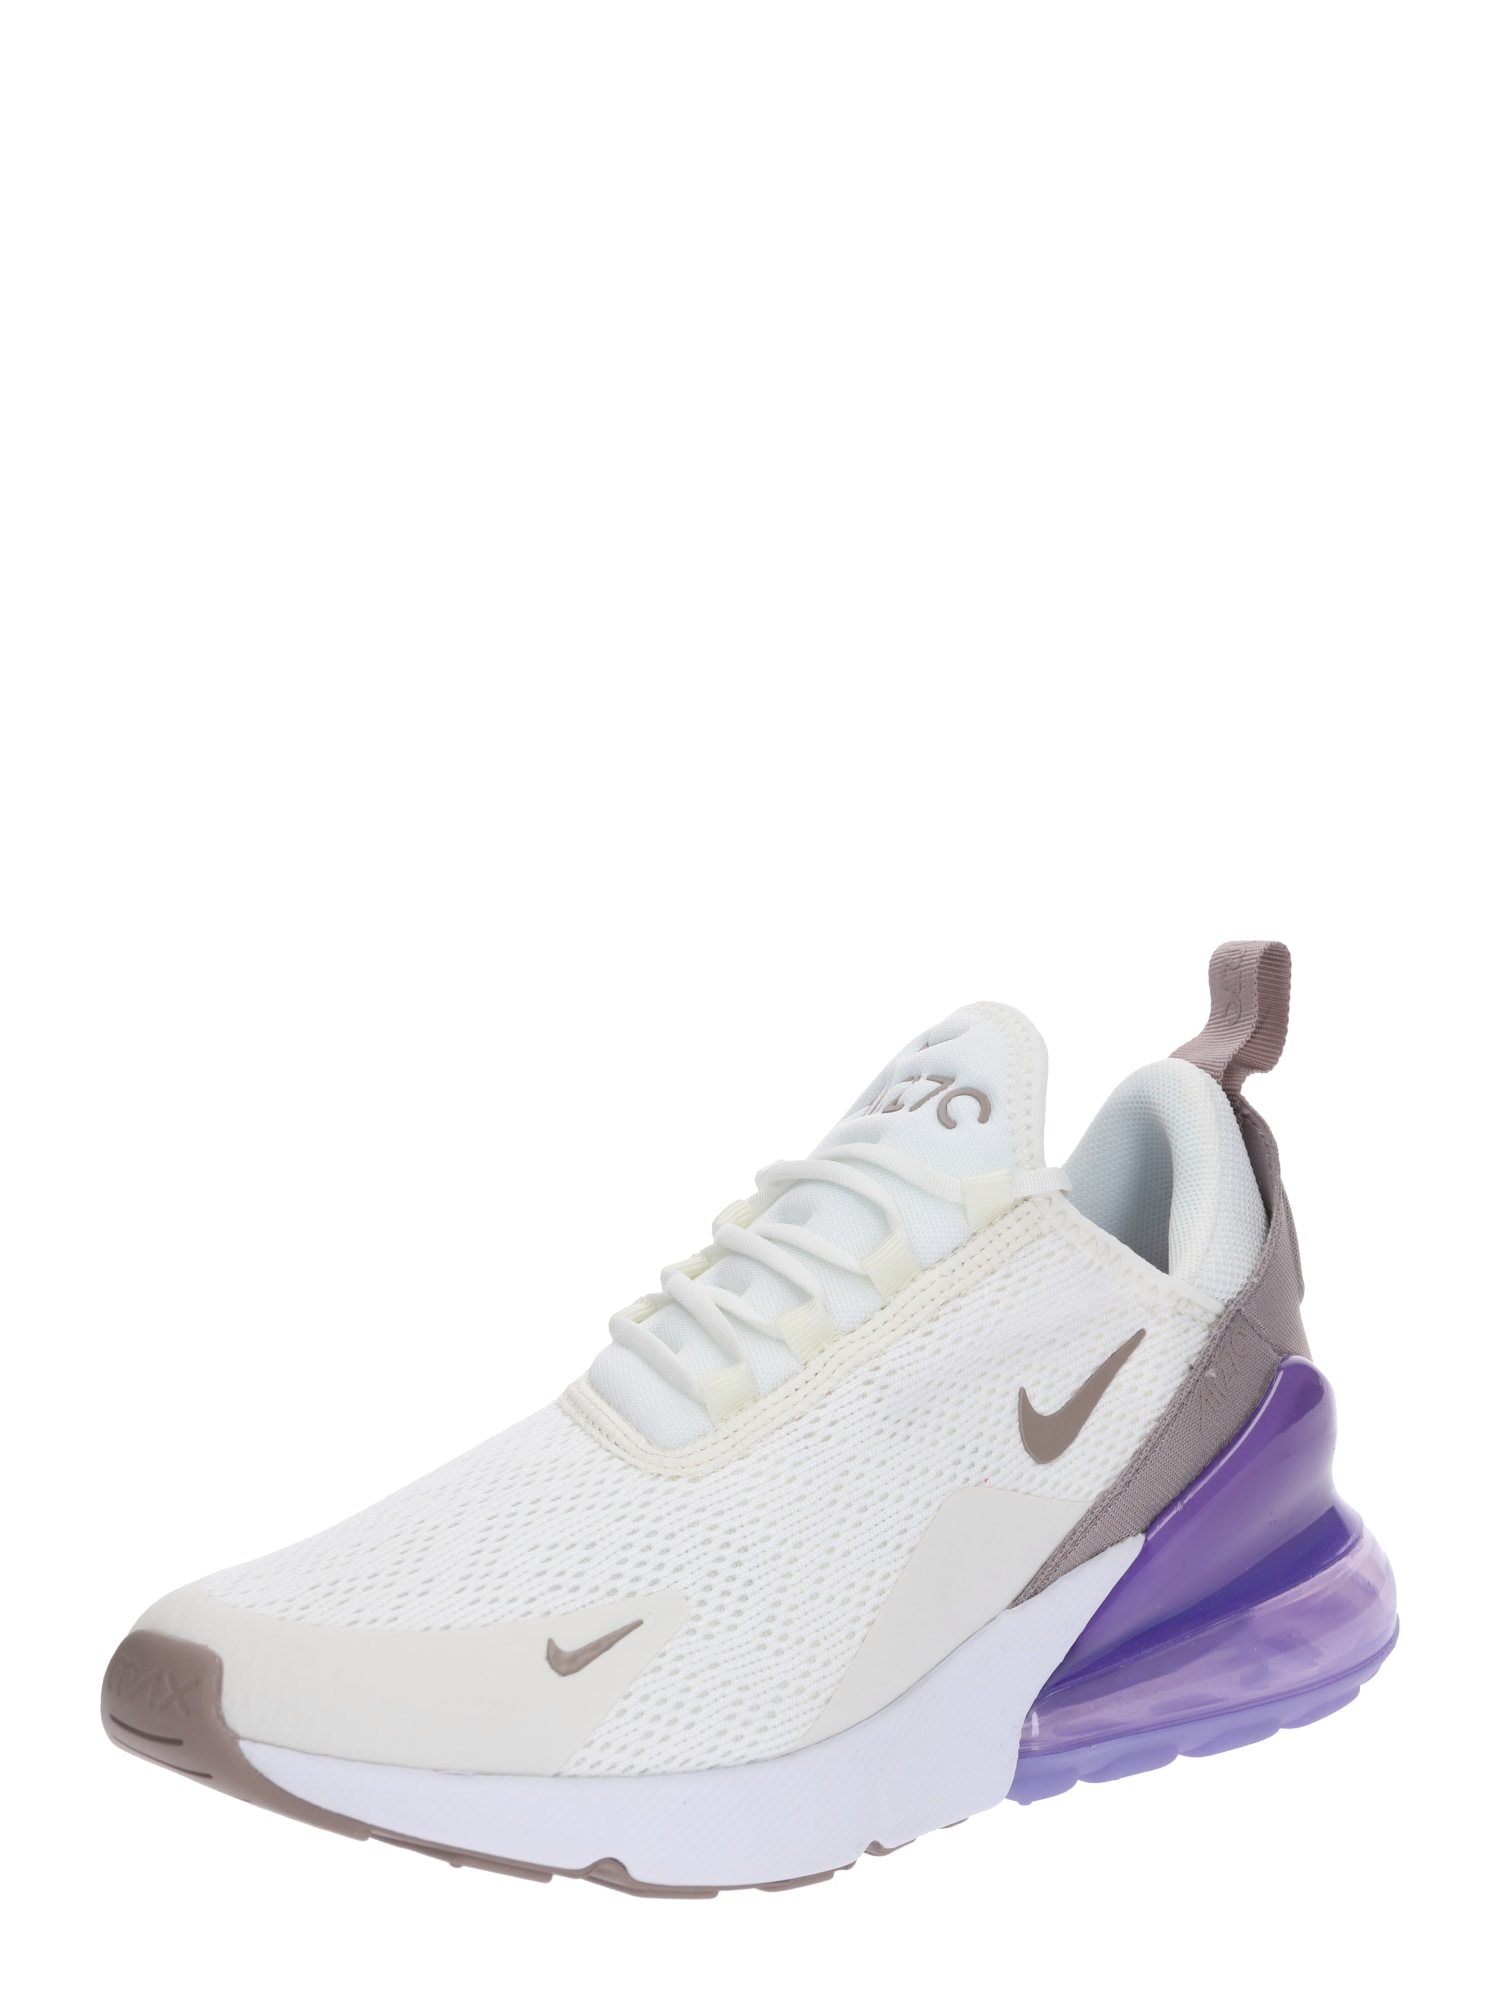 Nike Sportswear, Dames Sneakers laag 'Air Max 270', lila / wit